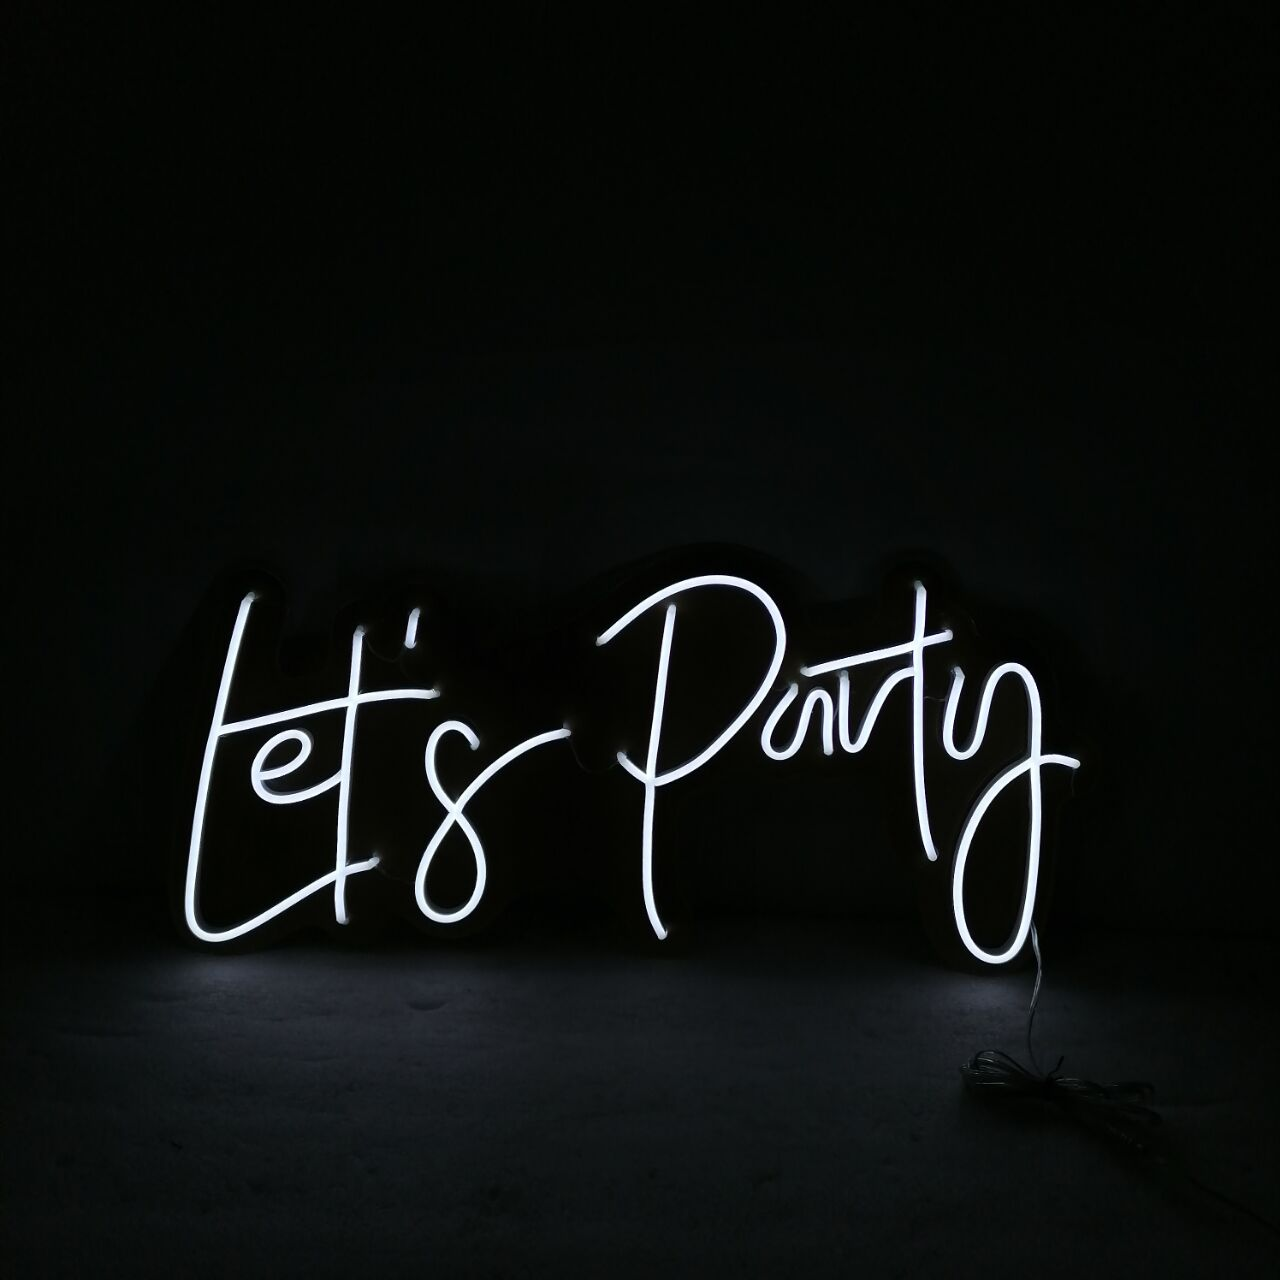 Custom Made Let's Party Lets LED Neon Sign Wall Lights Party Wedding Shop Window Restaurant Birthday Decor Custom Led Neon Sign enlarge